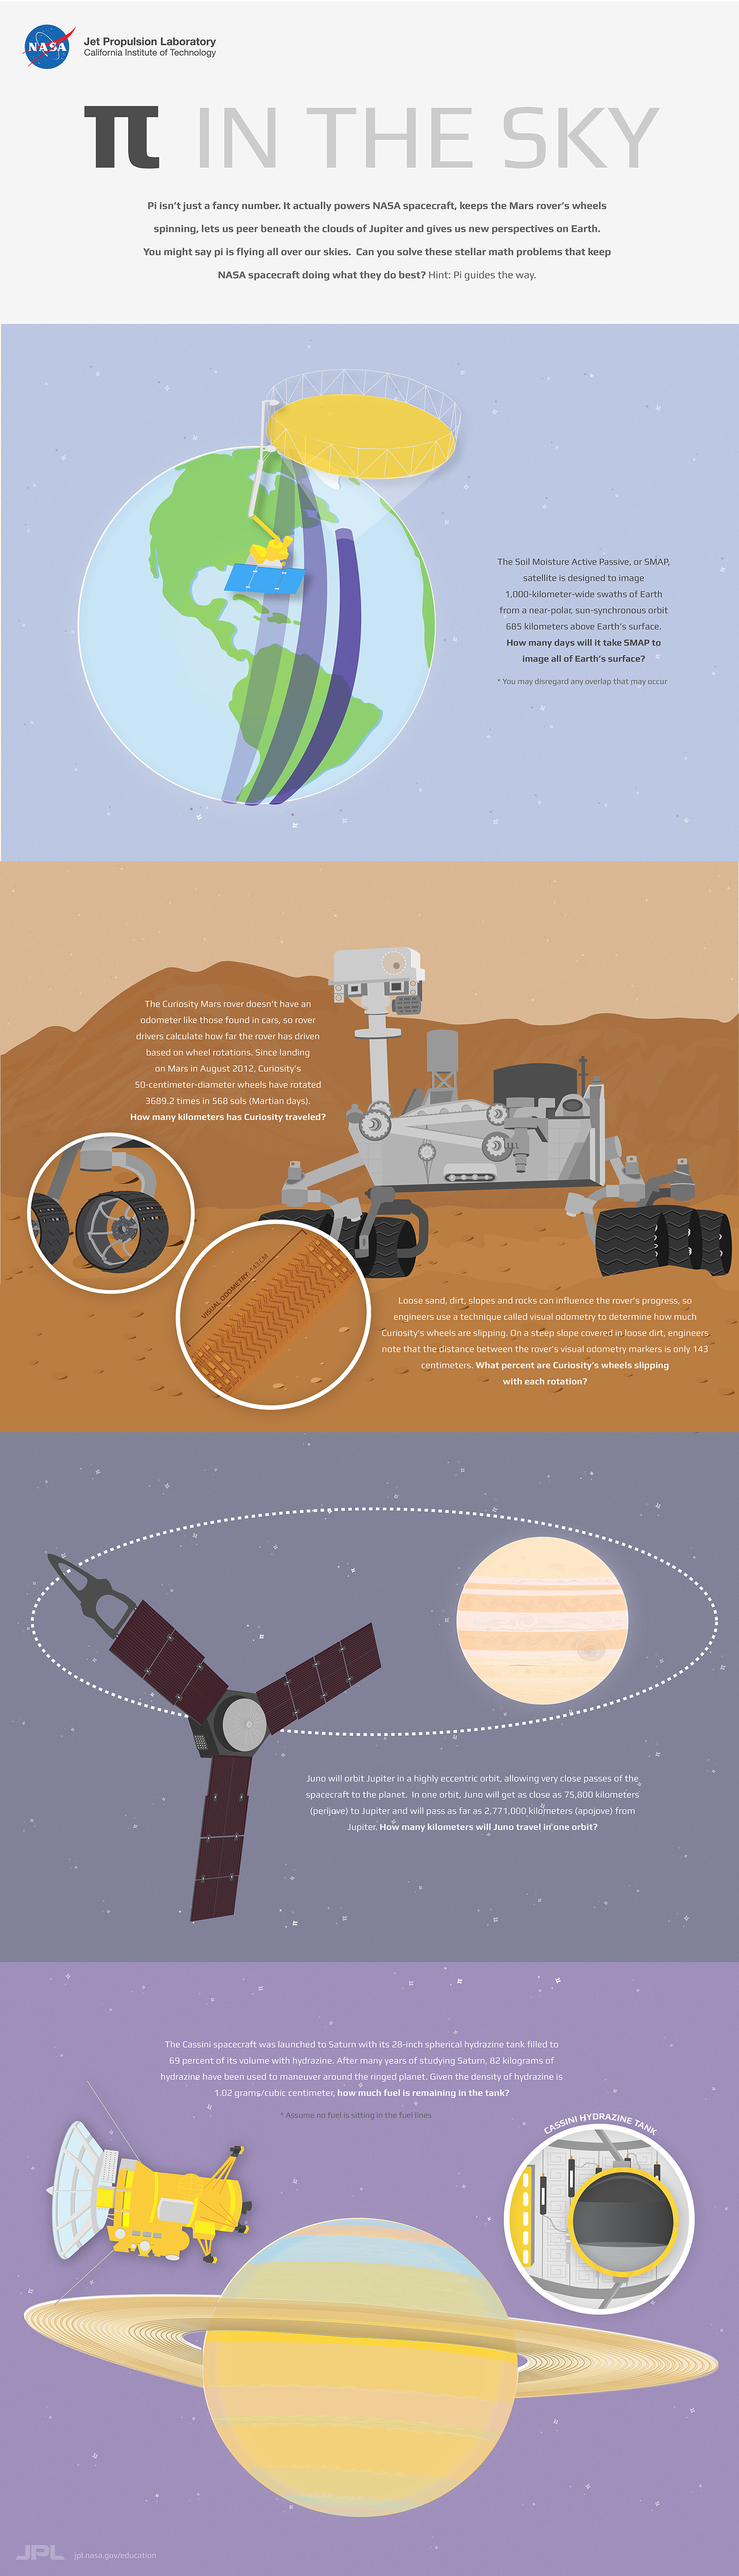 News And Blogs Nasa Jpl Edu Saturn Sky Engine Diagram Pi In The Infographic